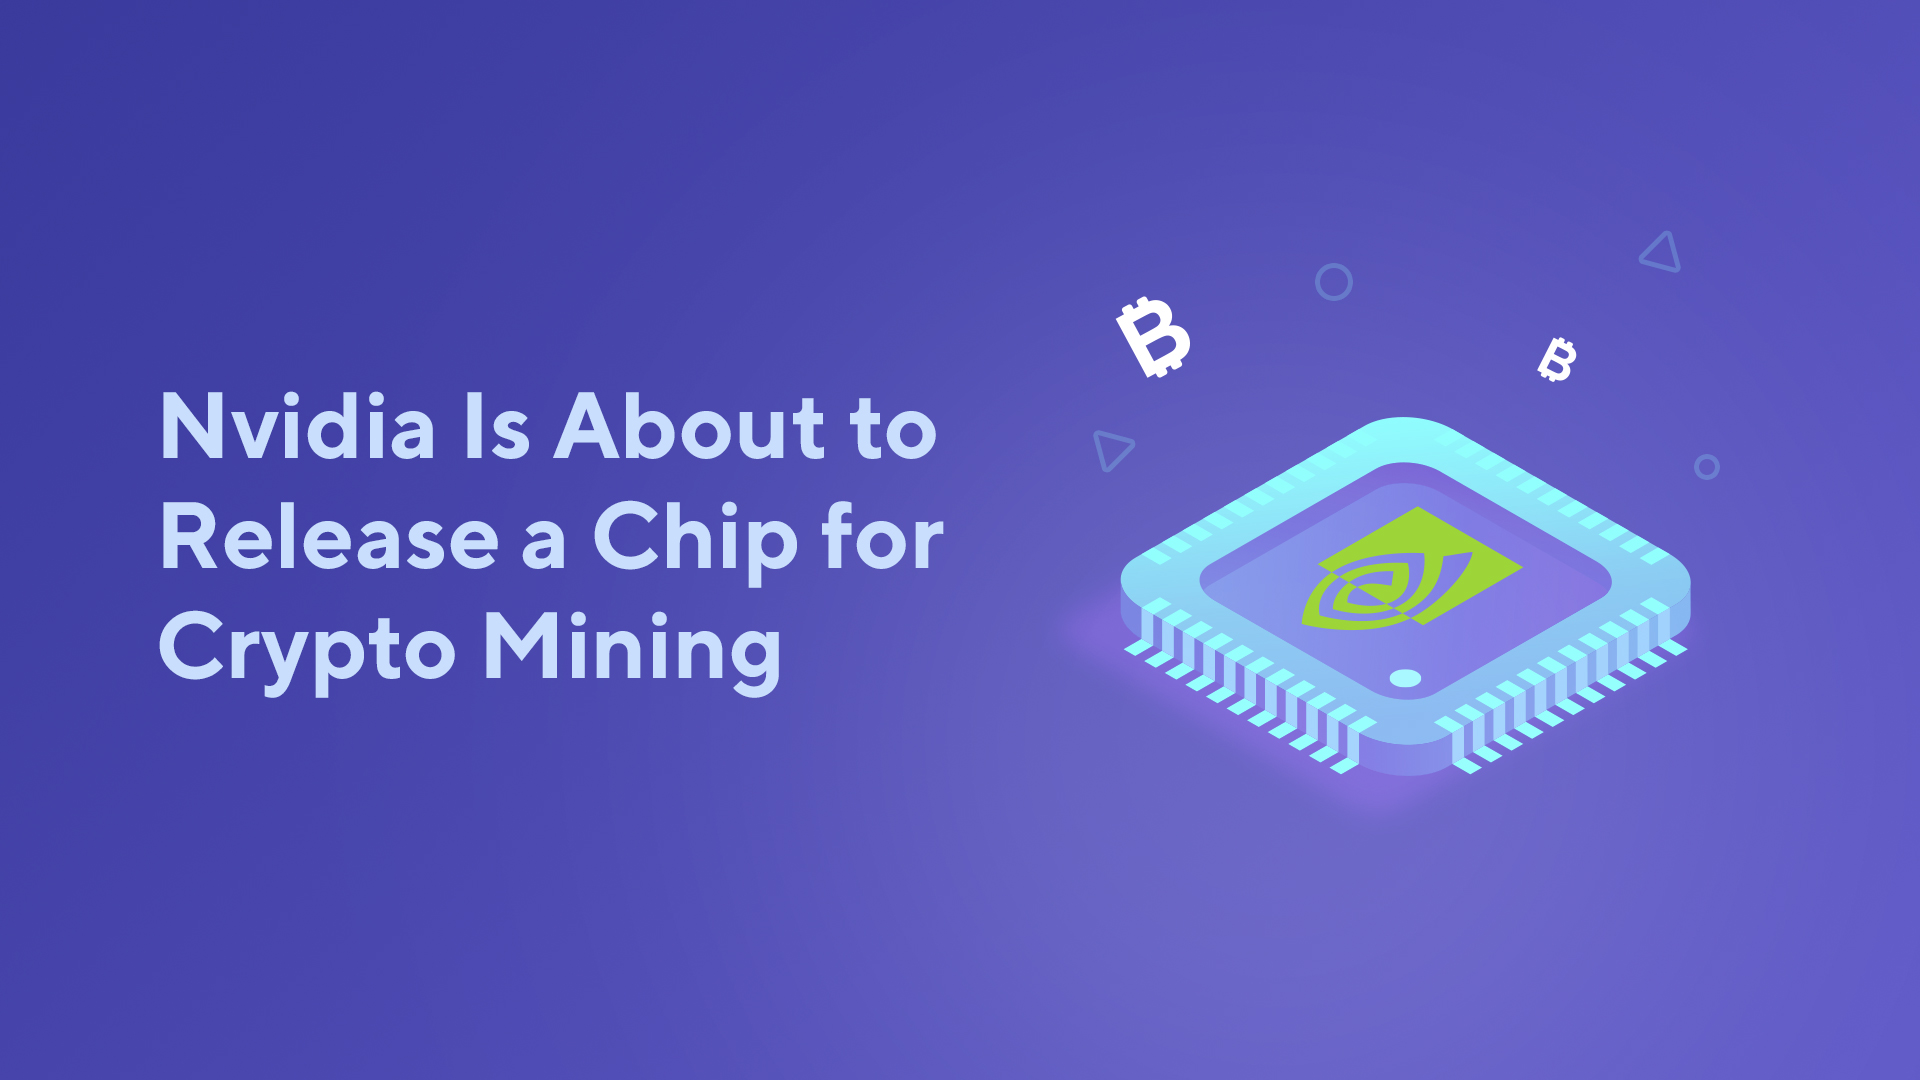 Nvidia Is About to Release a Chip for Crypto Mining